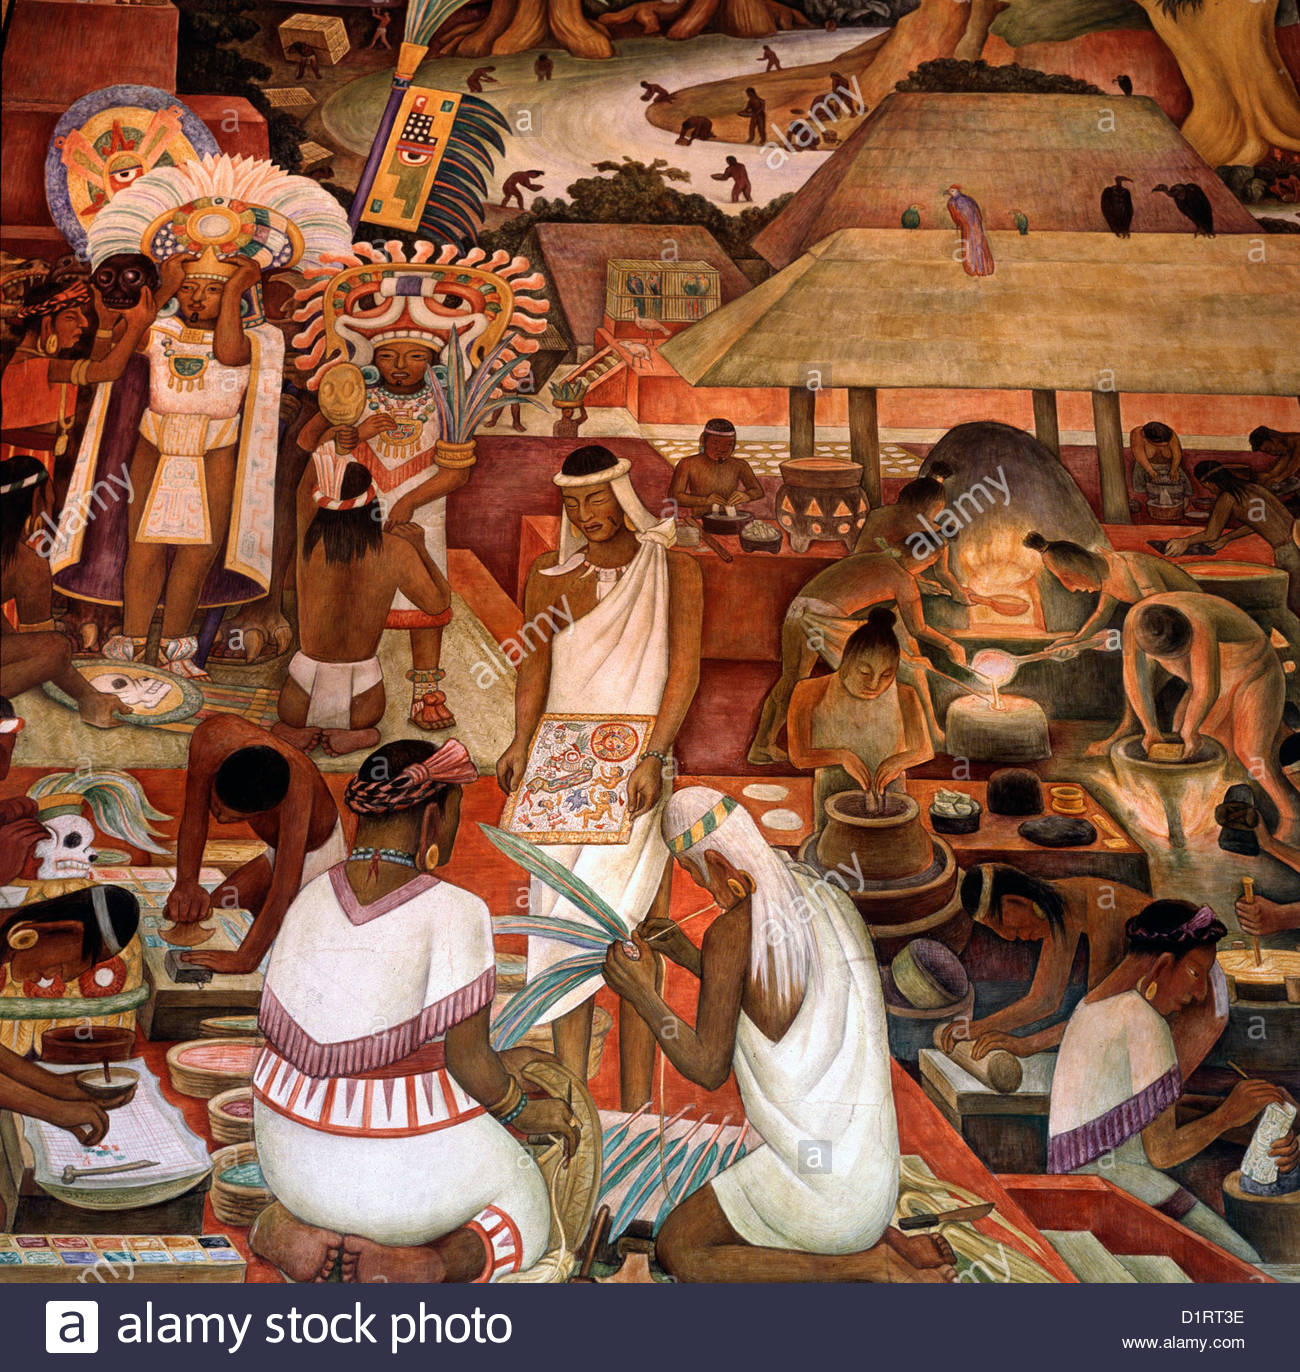 Mexico City Government Palace; mural by Diego Rivera, life of the Aztecs/Mexica in Tenochtitlan, their capital city; - Stock Image